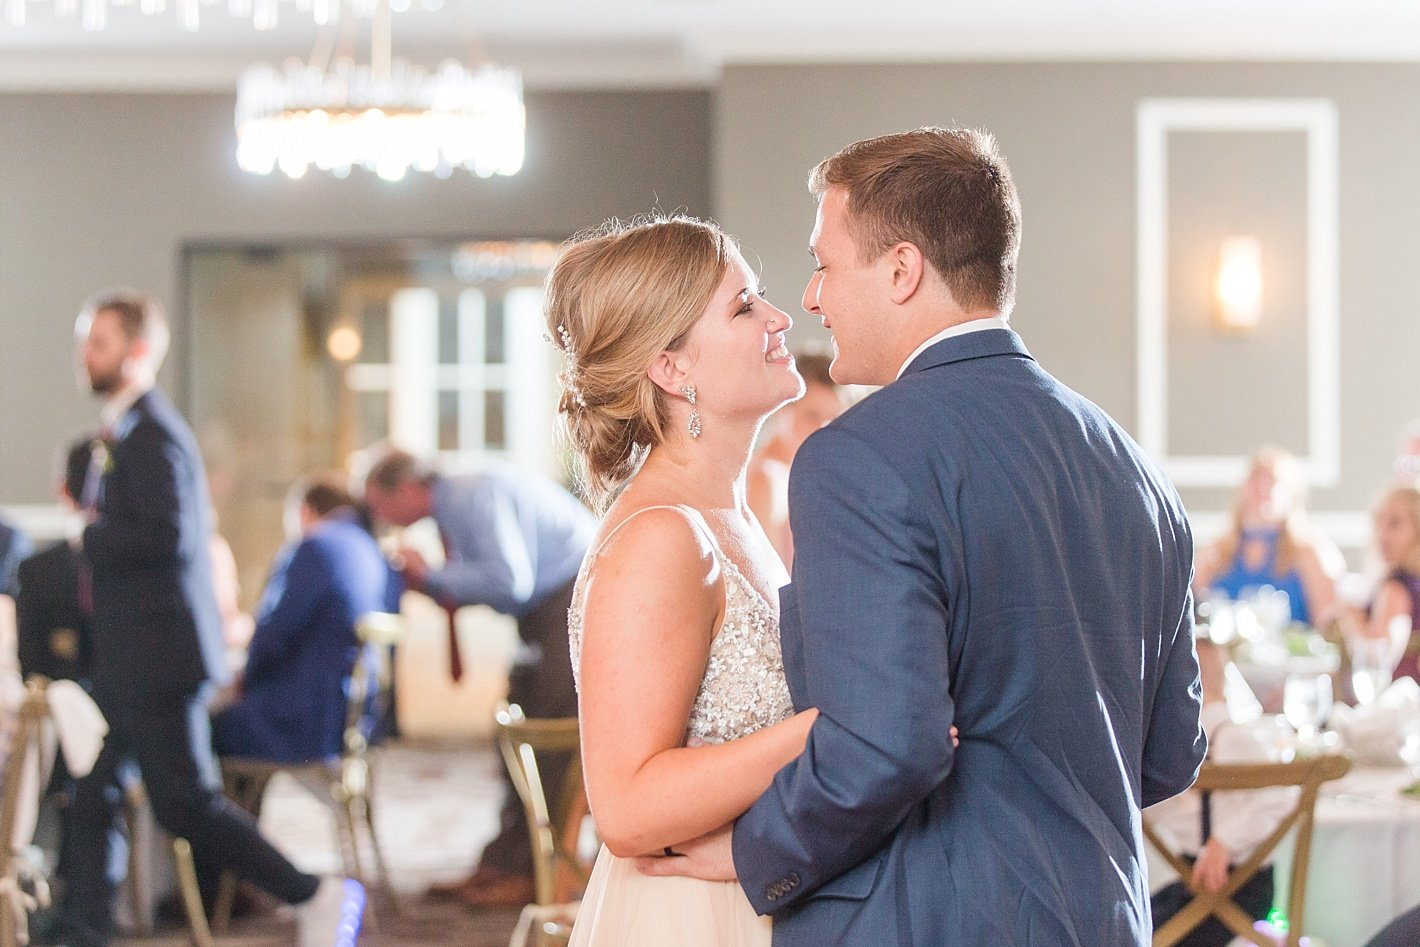 Eagles Nest Country Club wedding reception, Arpasi Photography first dance photo